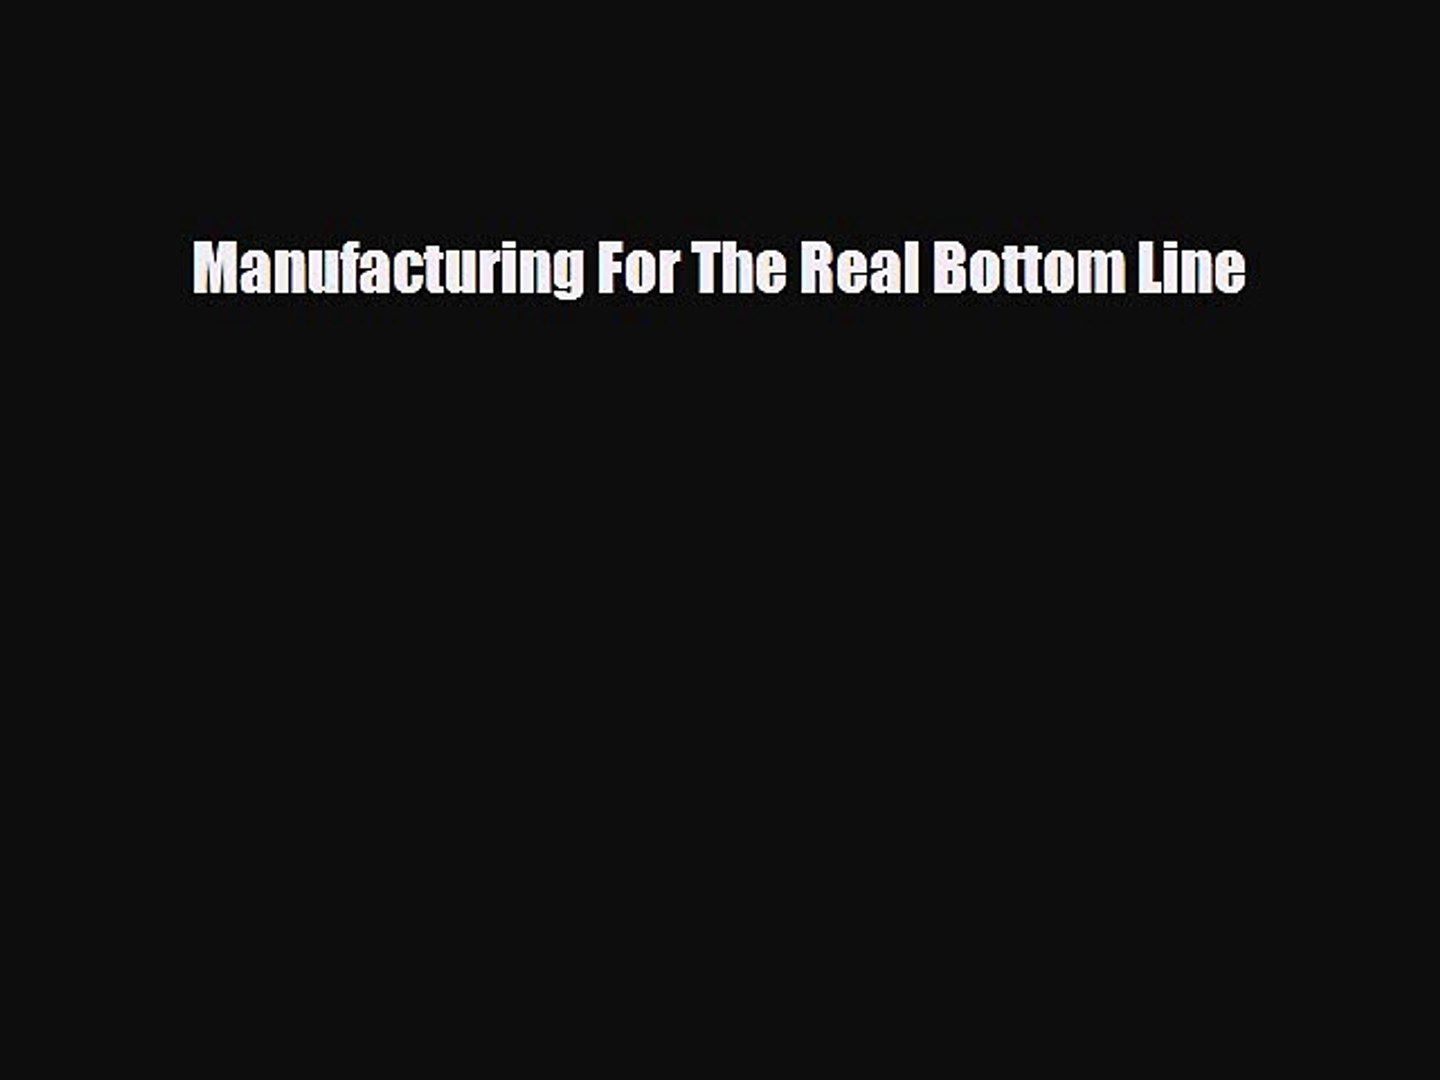 different  Manufacturing For The Real Bottom Line